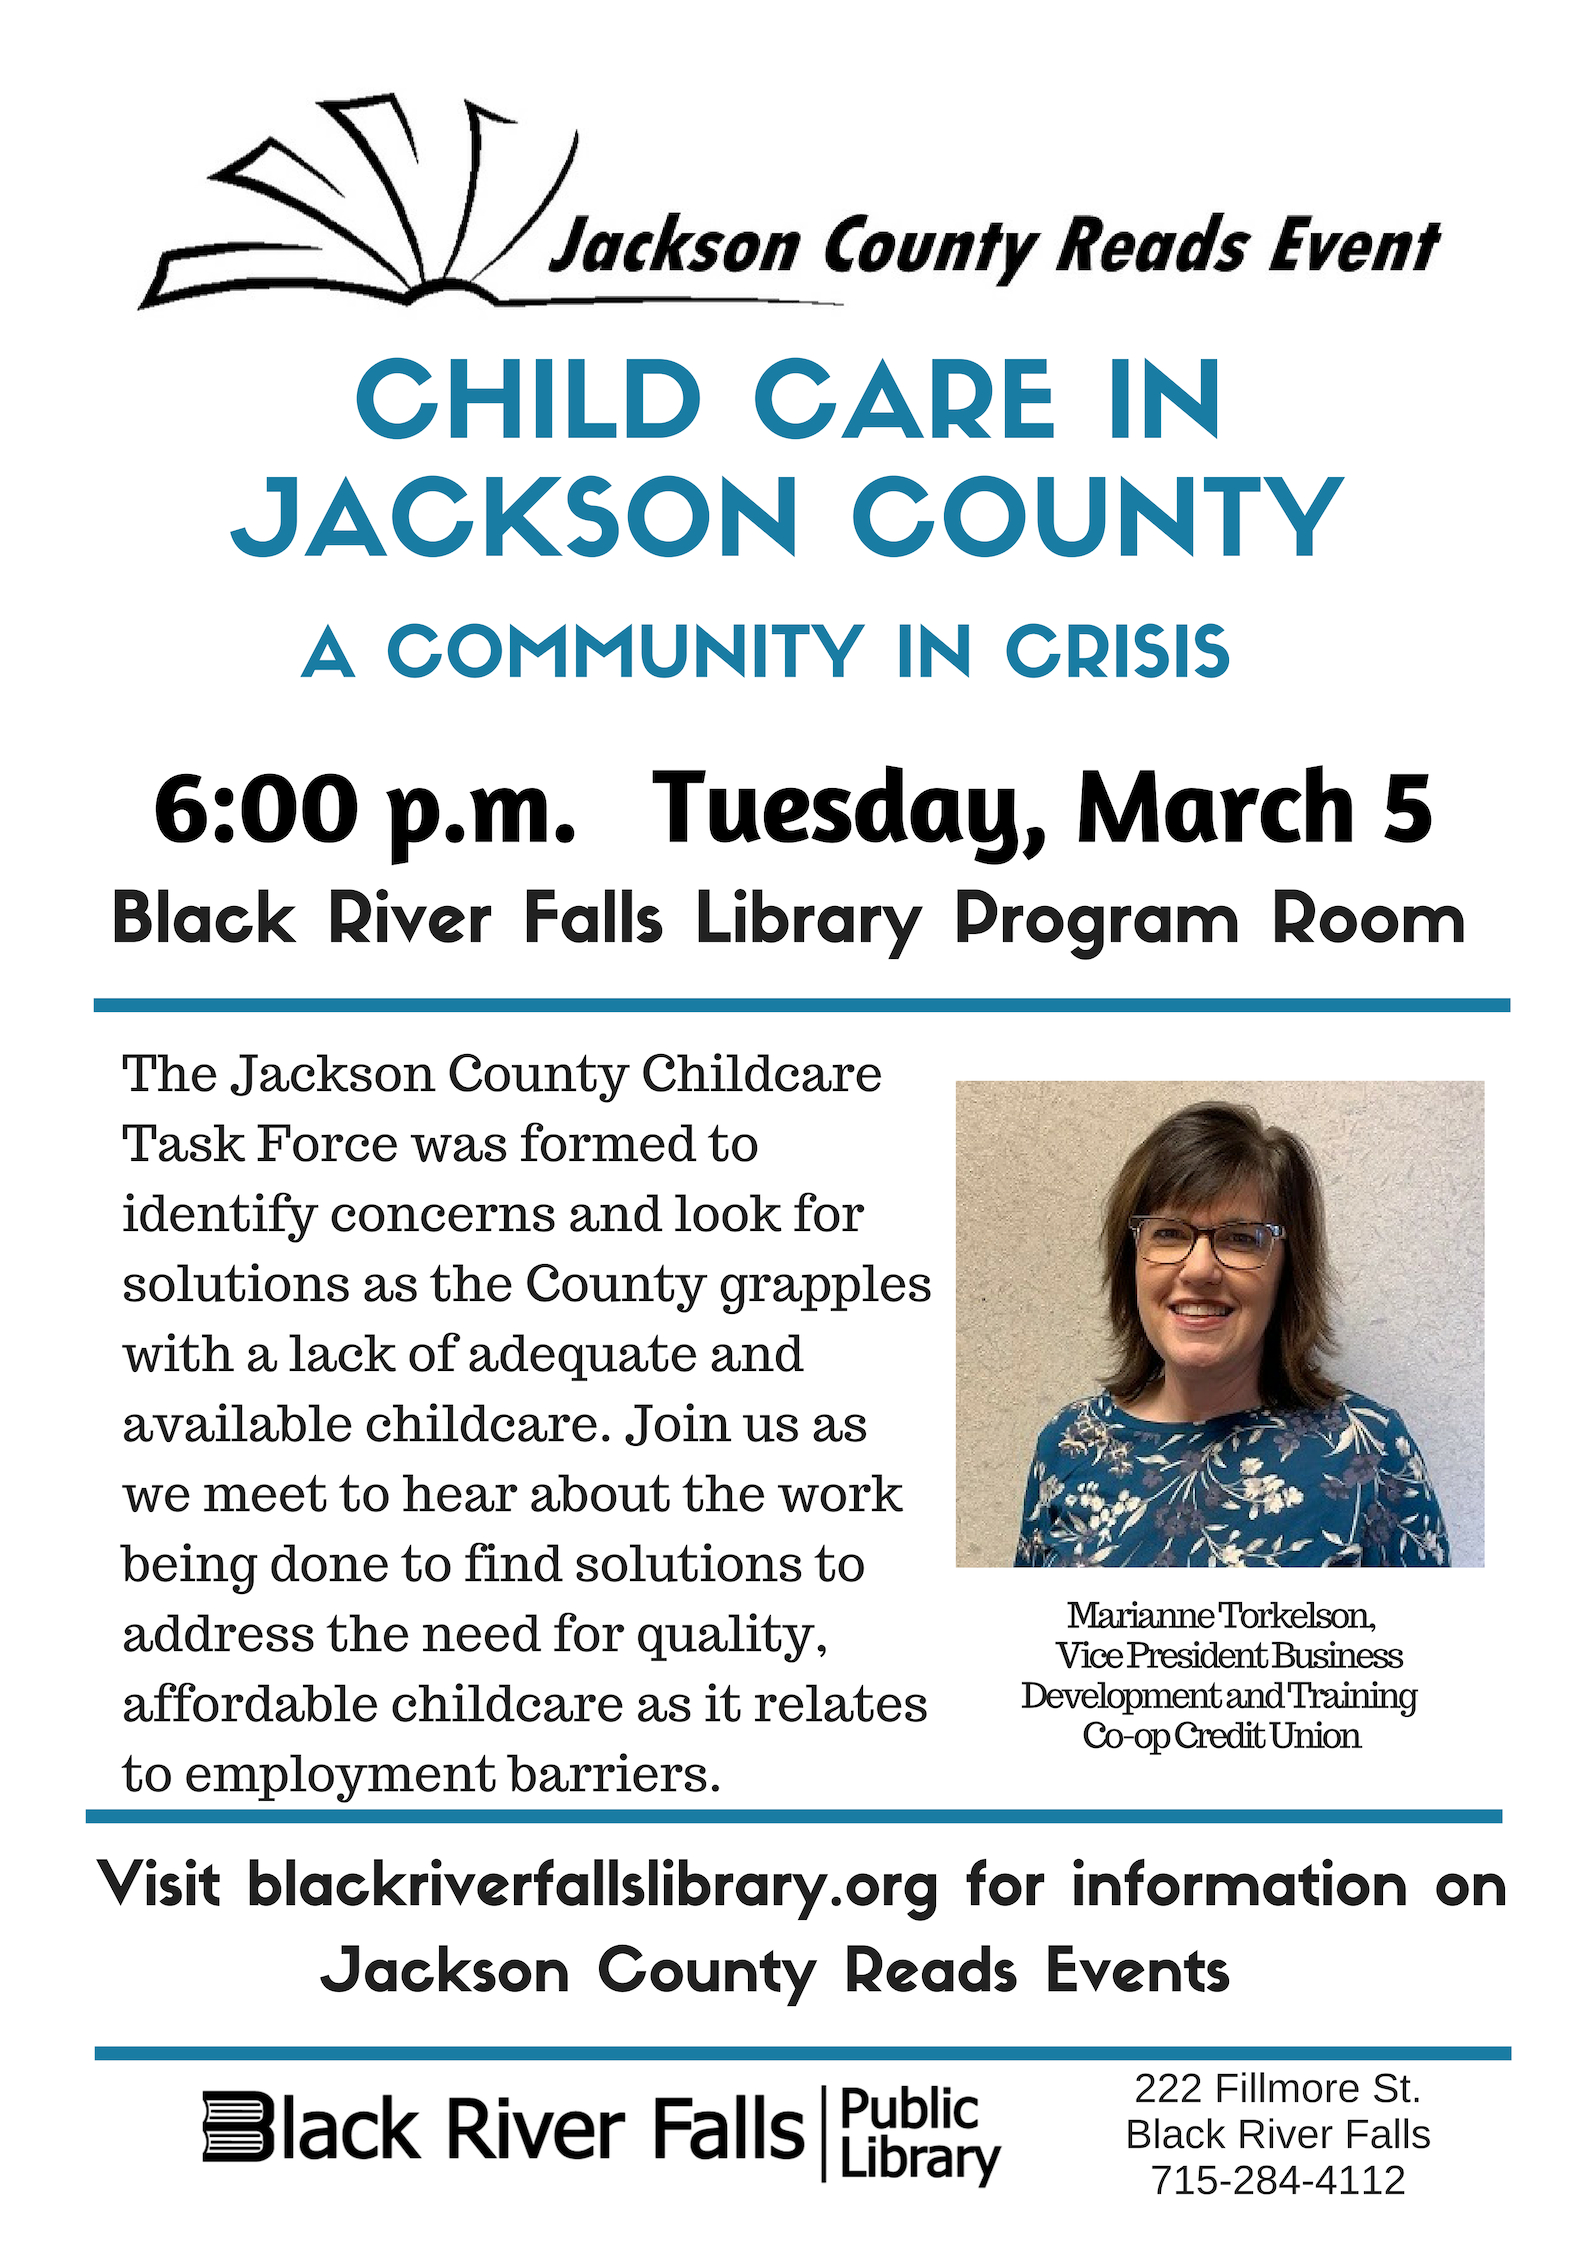 Child Care in Jackson County: A Community in Crisis